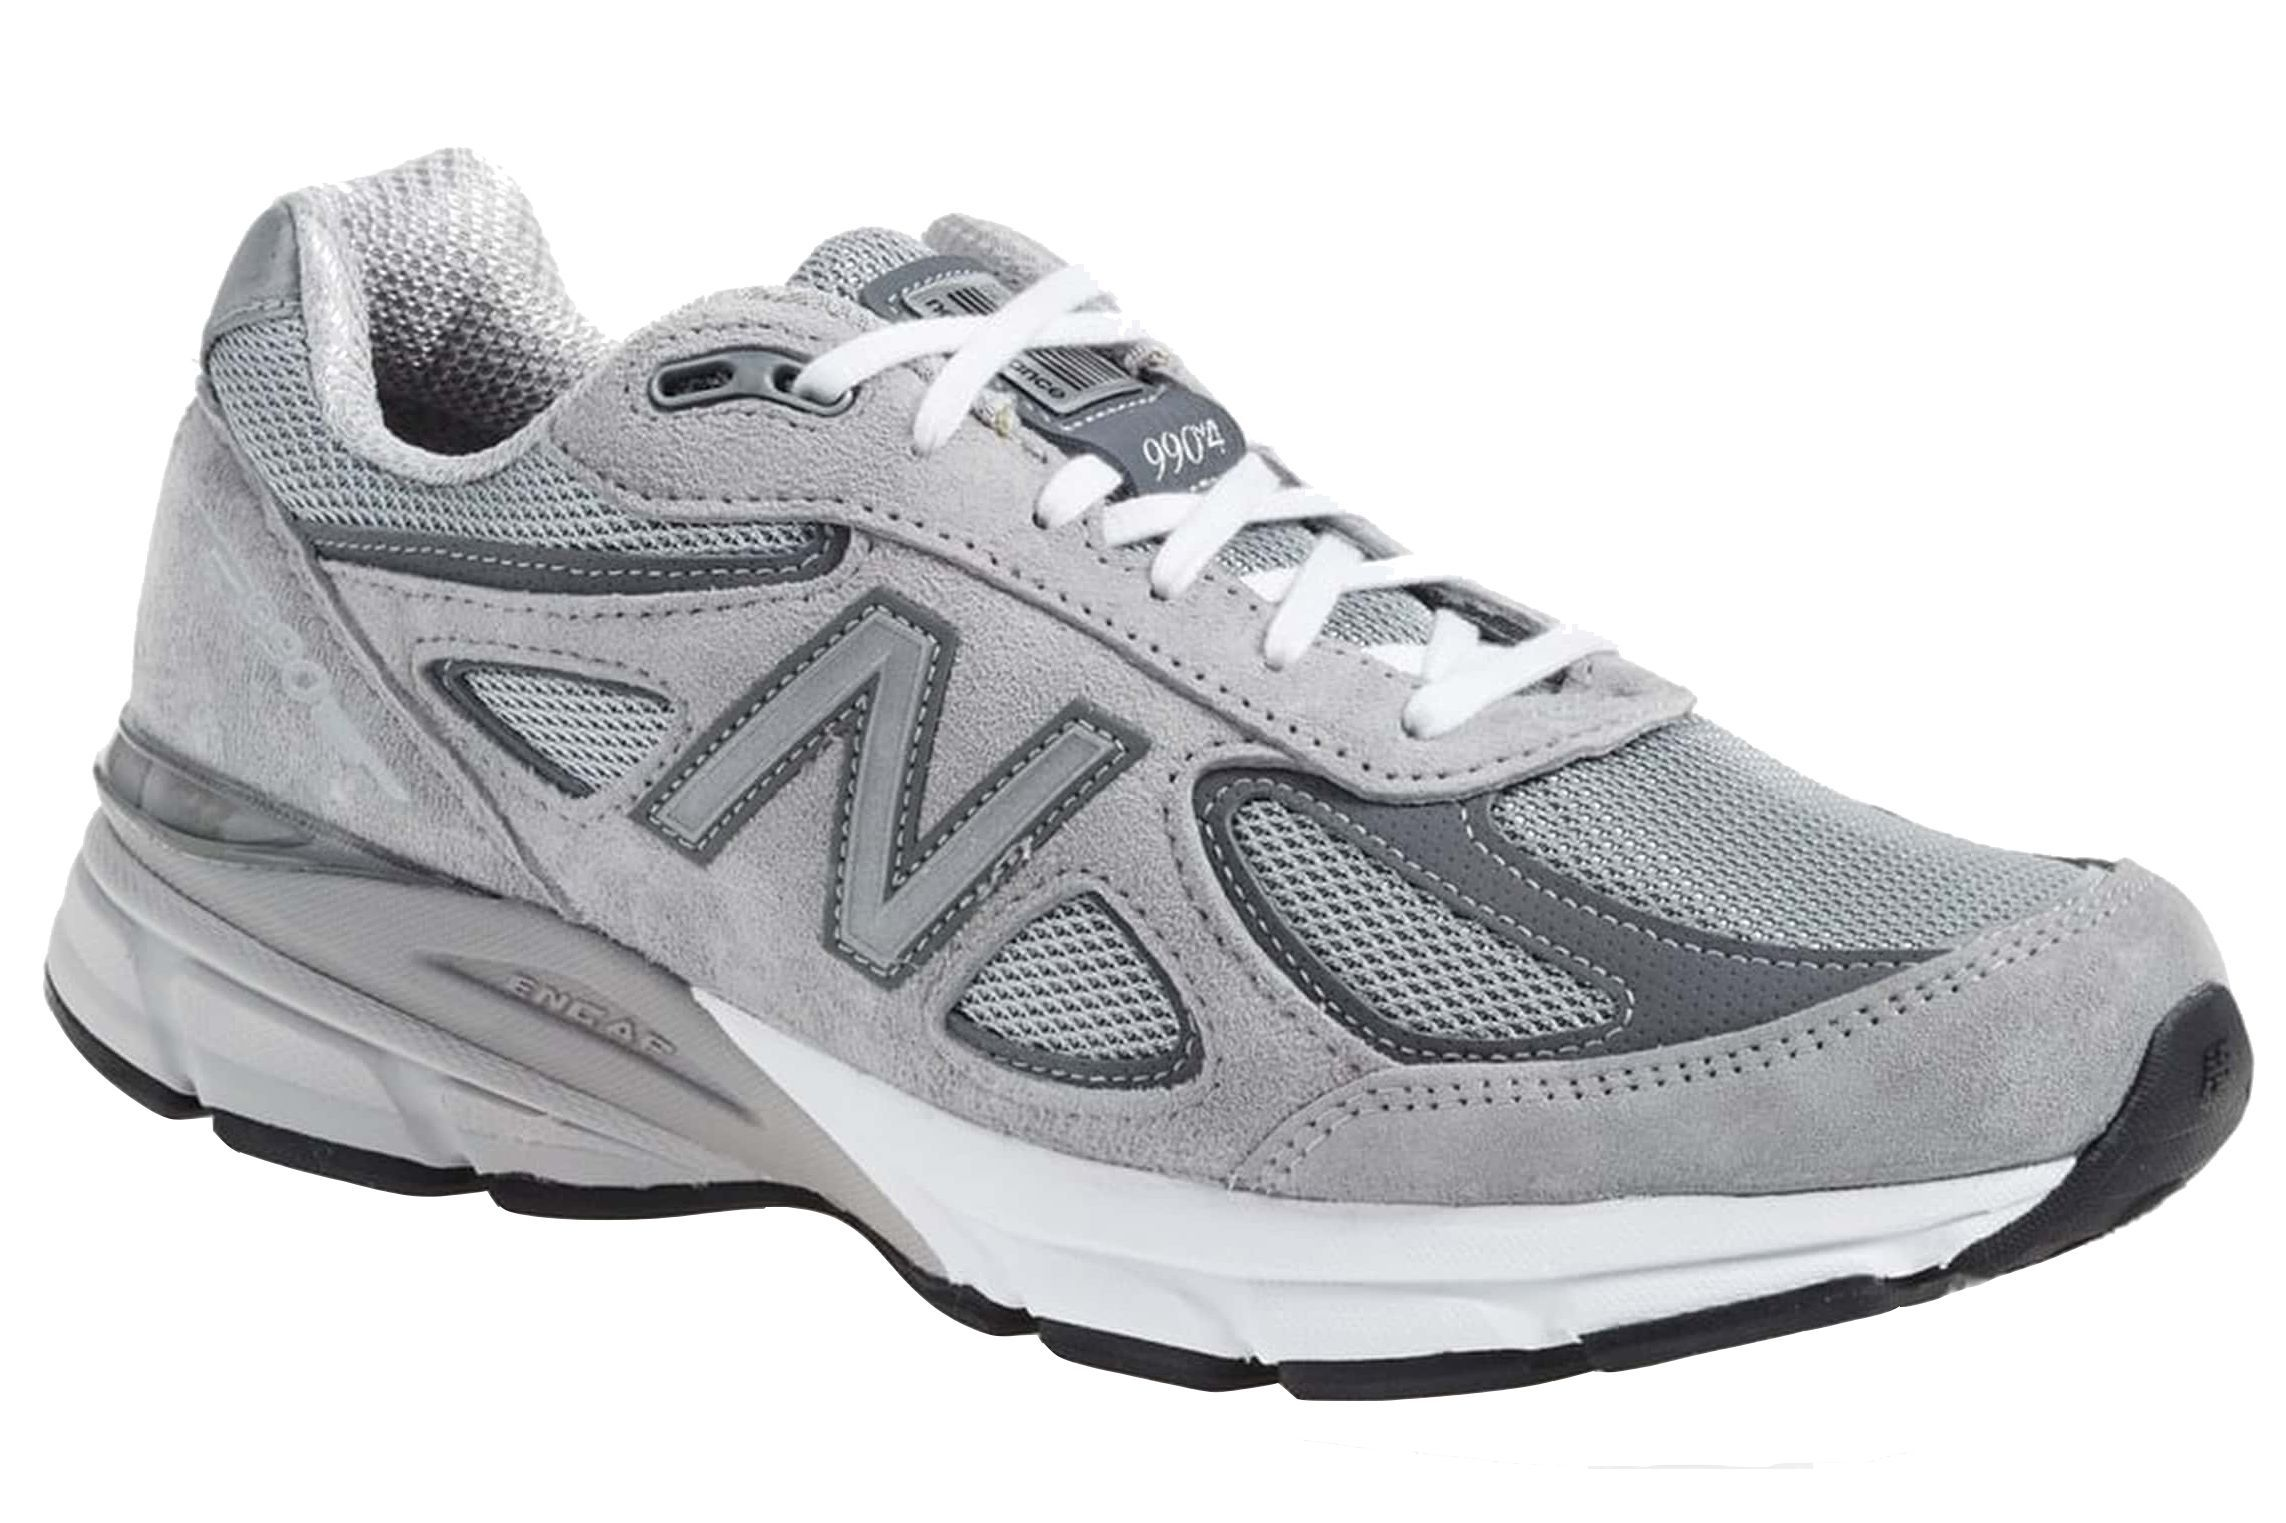 13 Best Ugly Sneakers for Men 2020